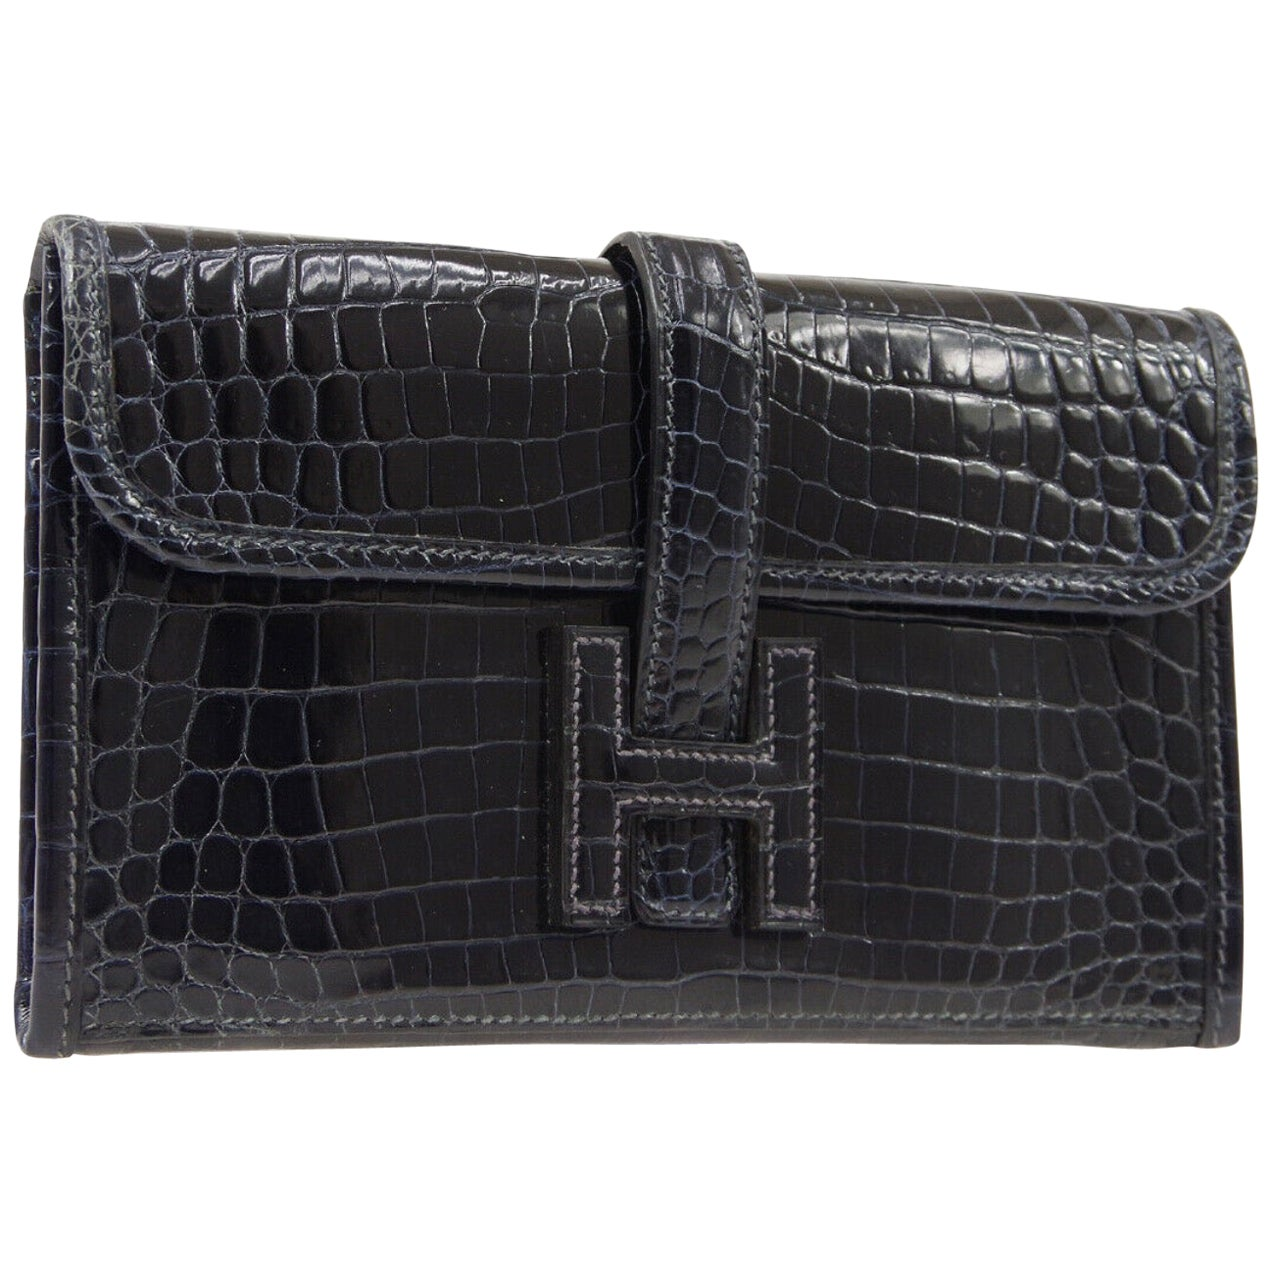 Hermes Crocodile Exotic Leather 'H' Logo  Evening Wallet Clutch Flap Bag in Box